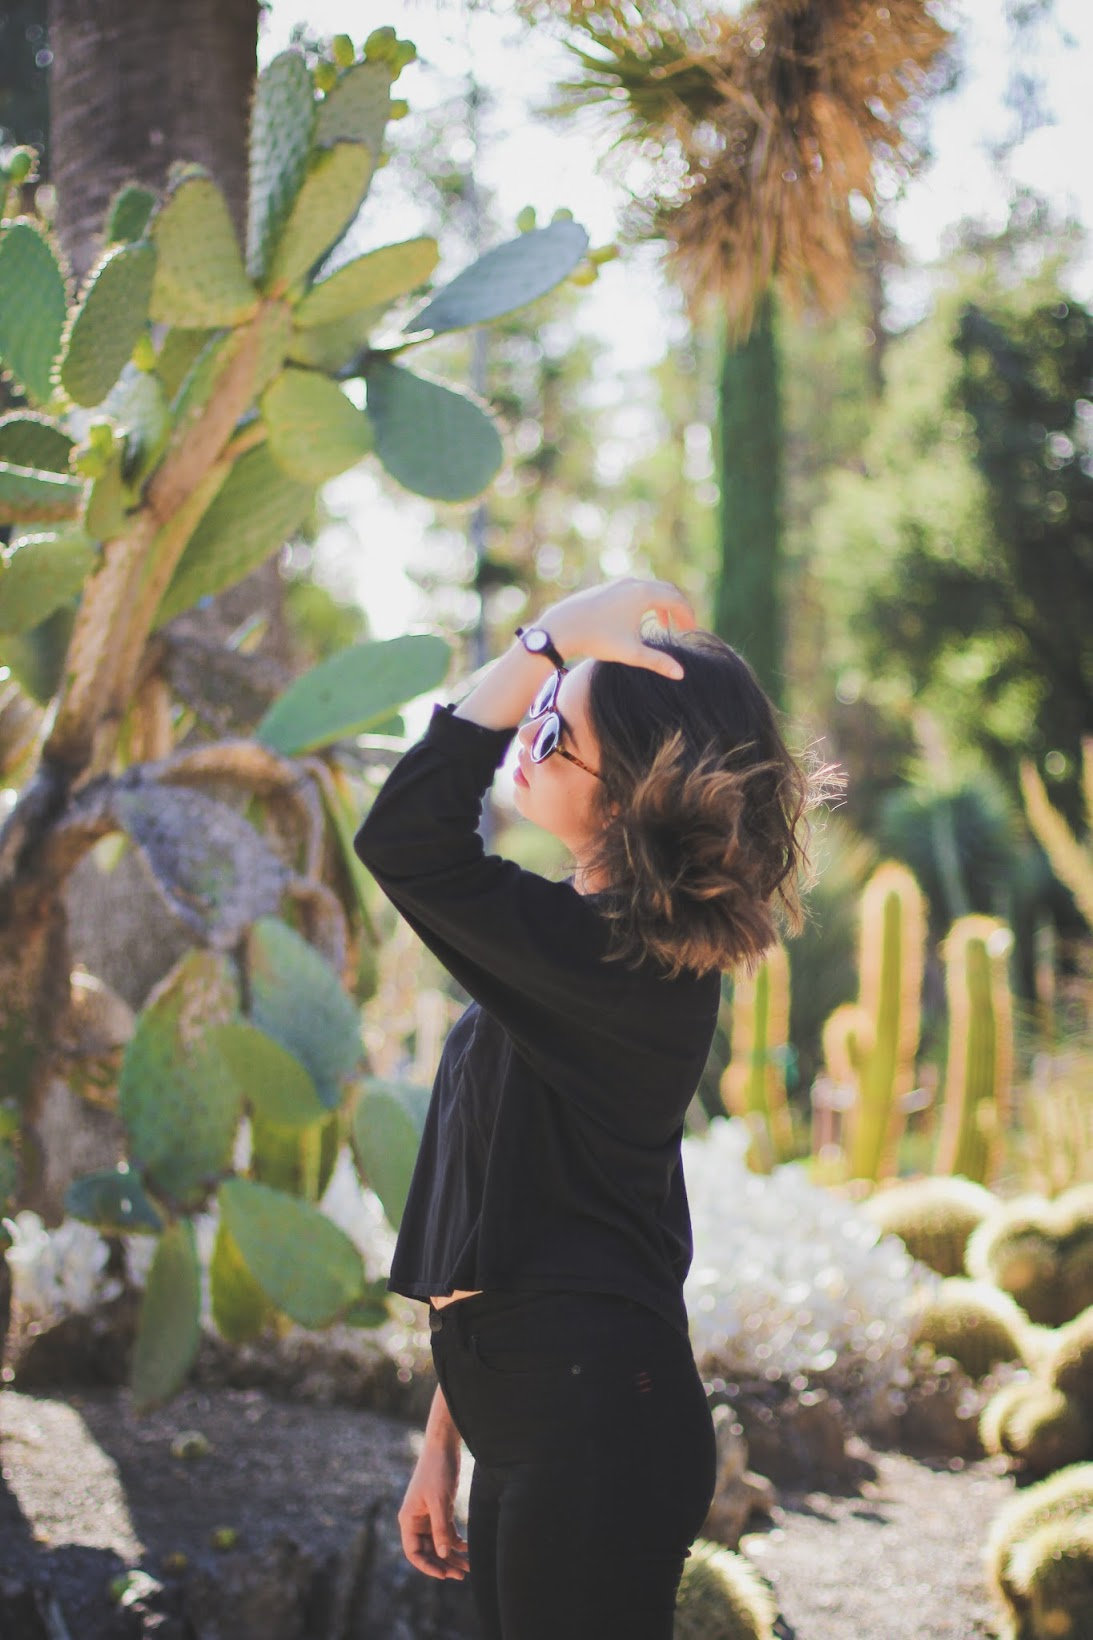 Black American Apparel top in a cactus garden.